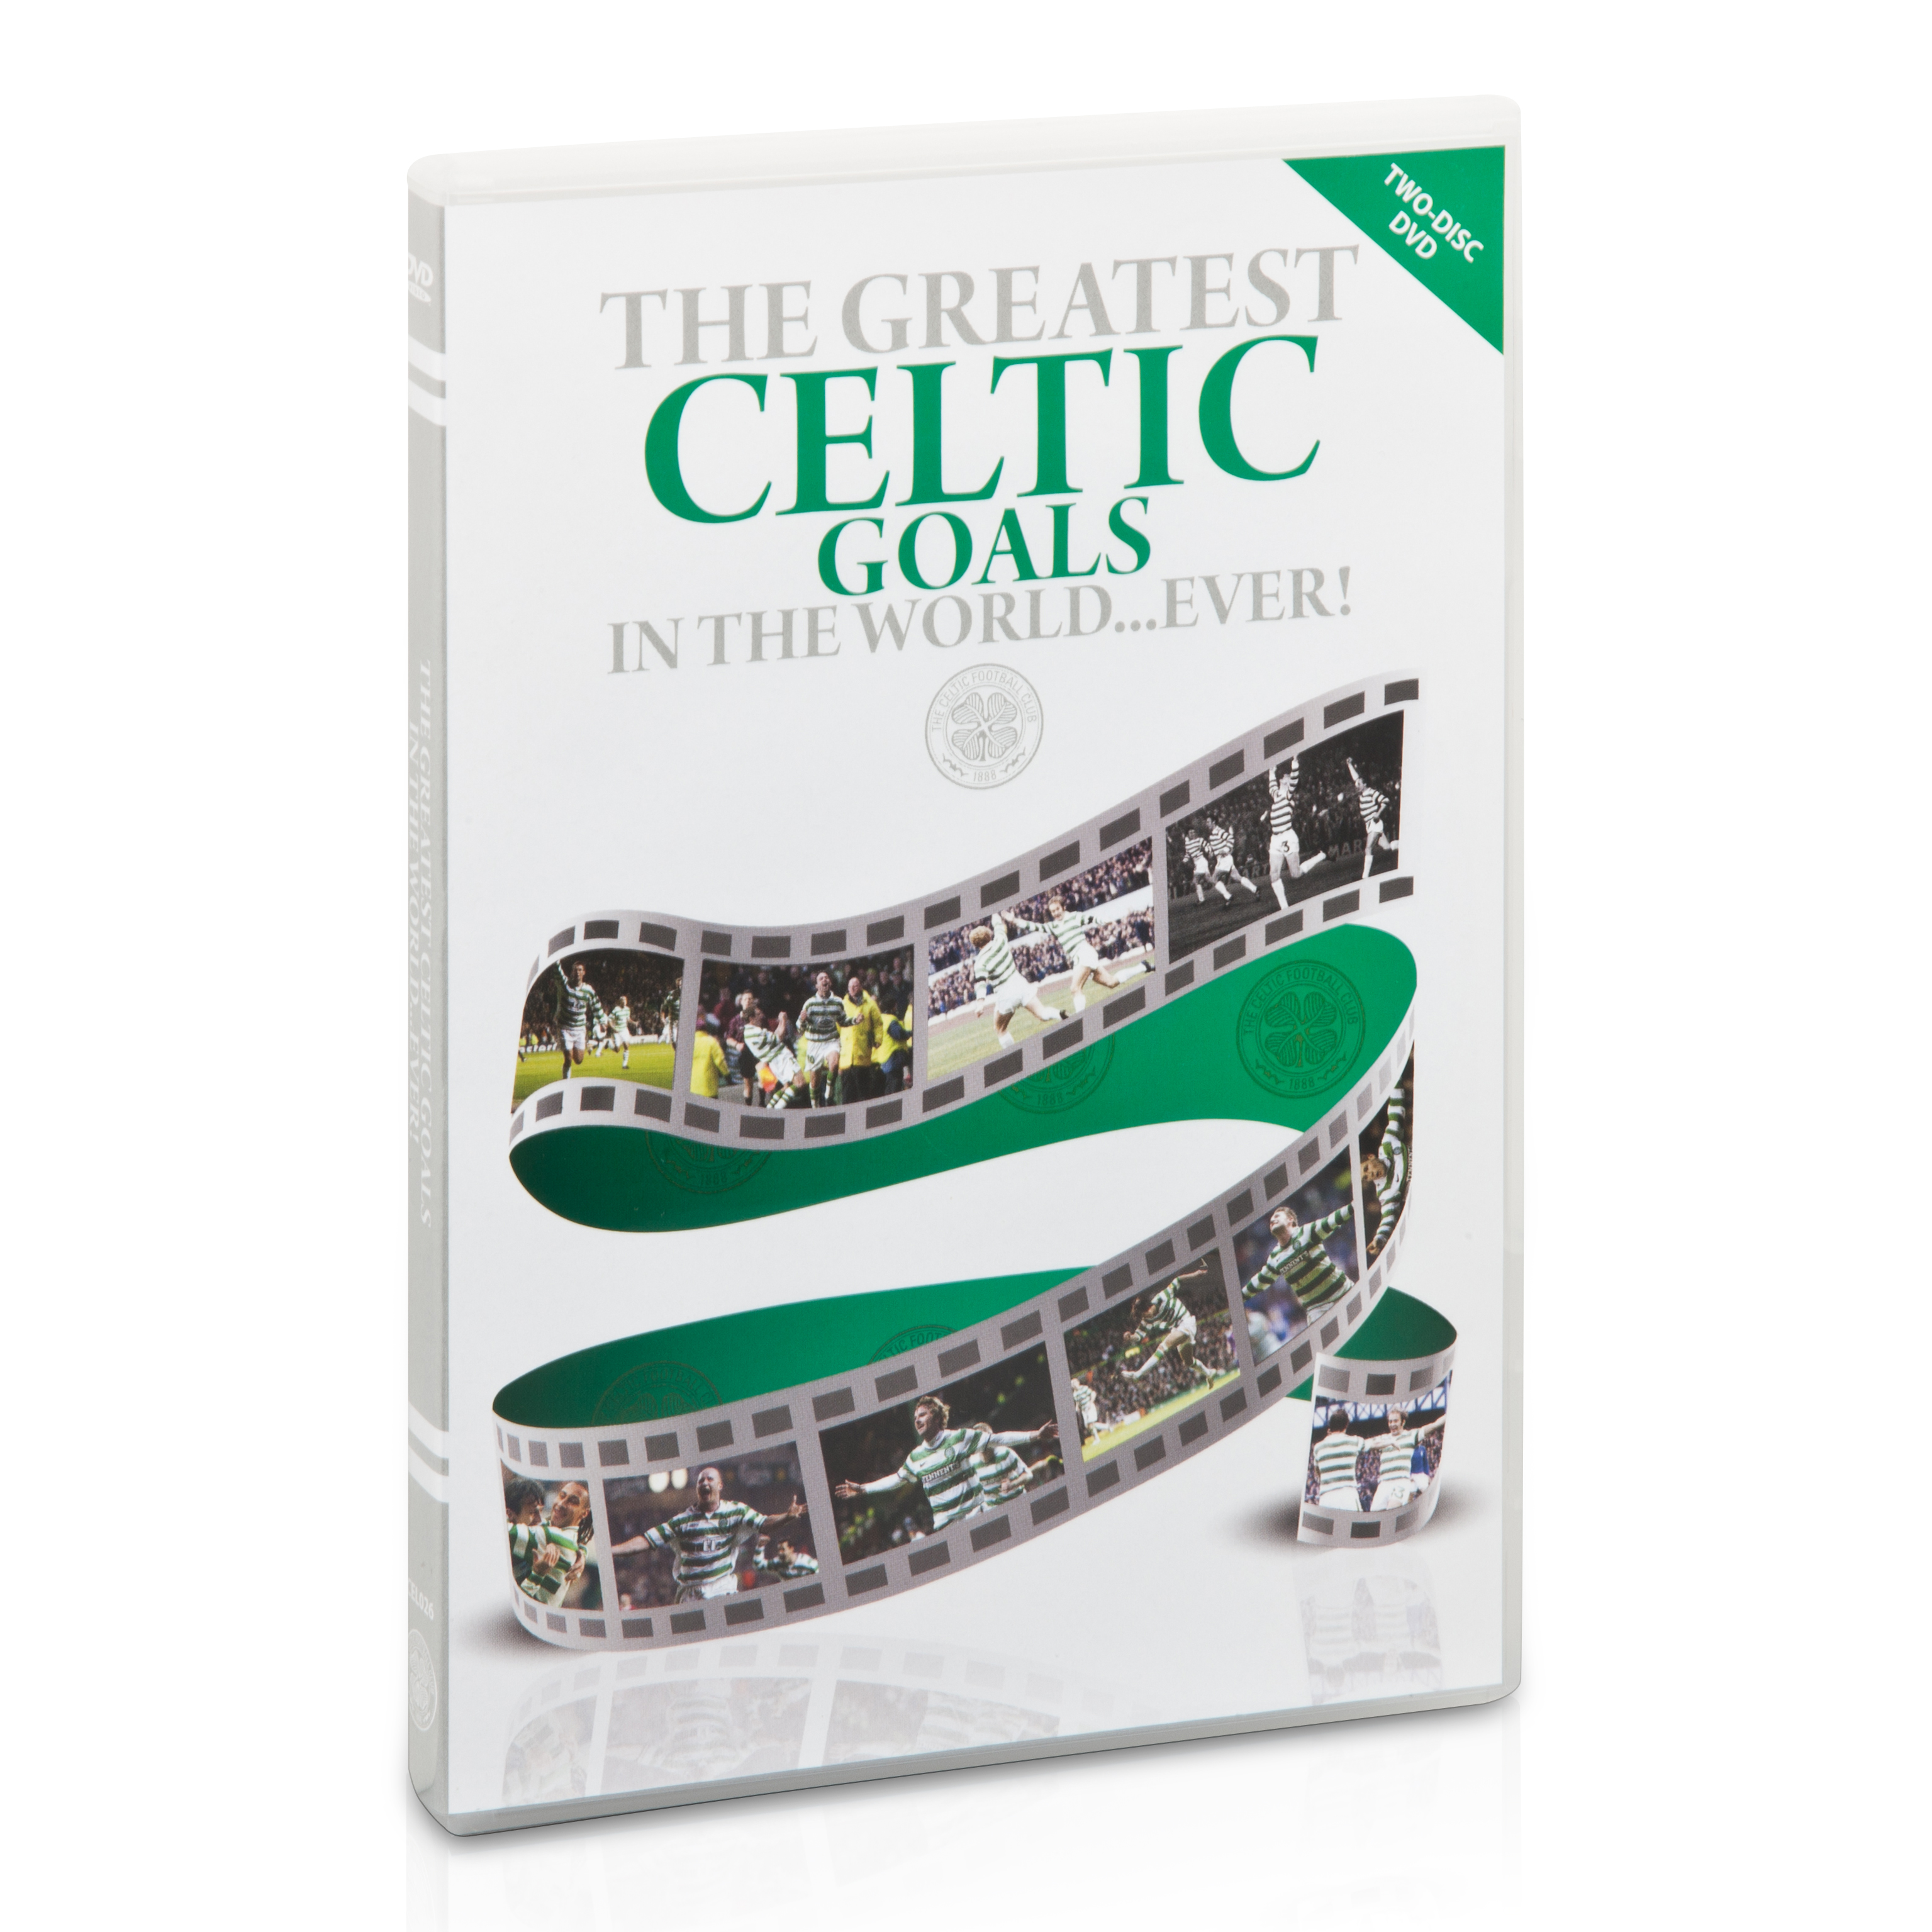 The Greatest Celtic Goals in the World Ever DVD